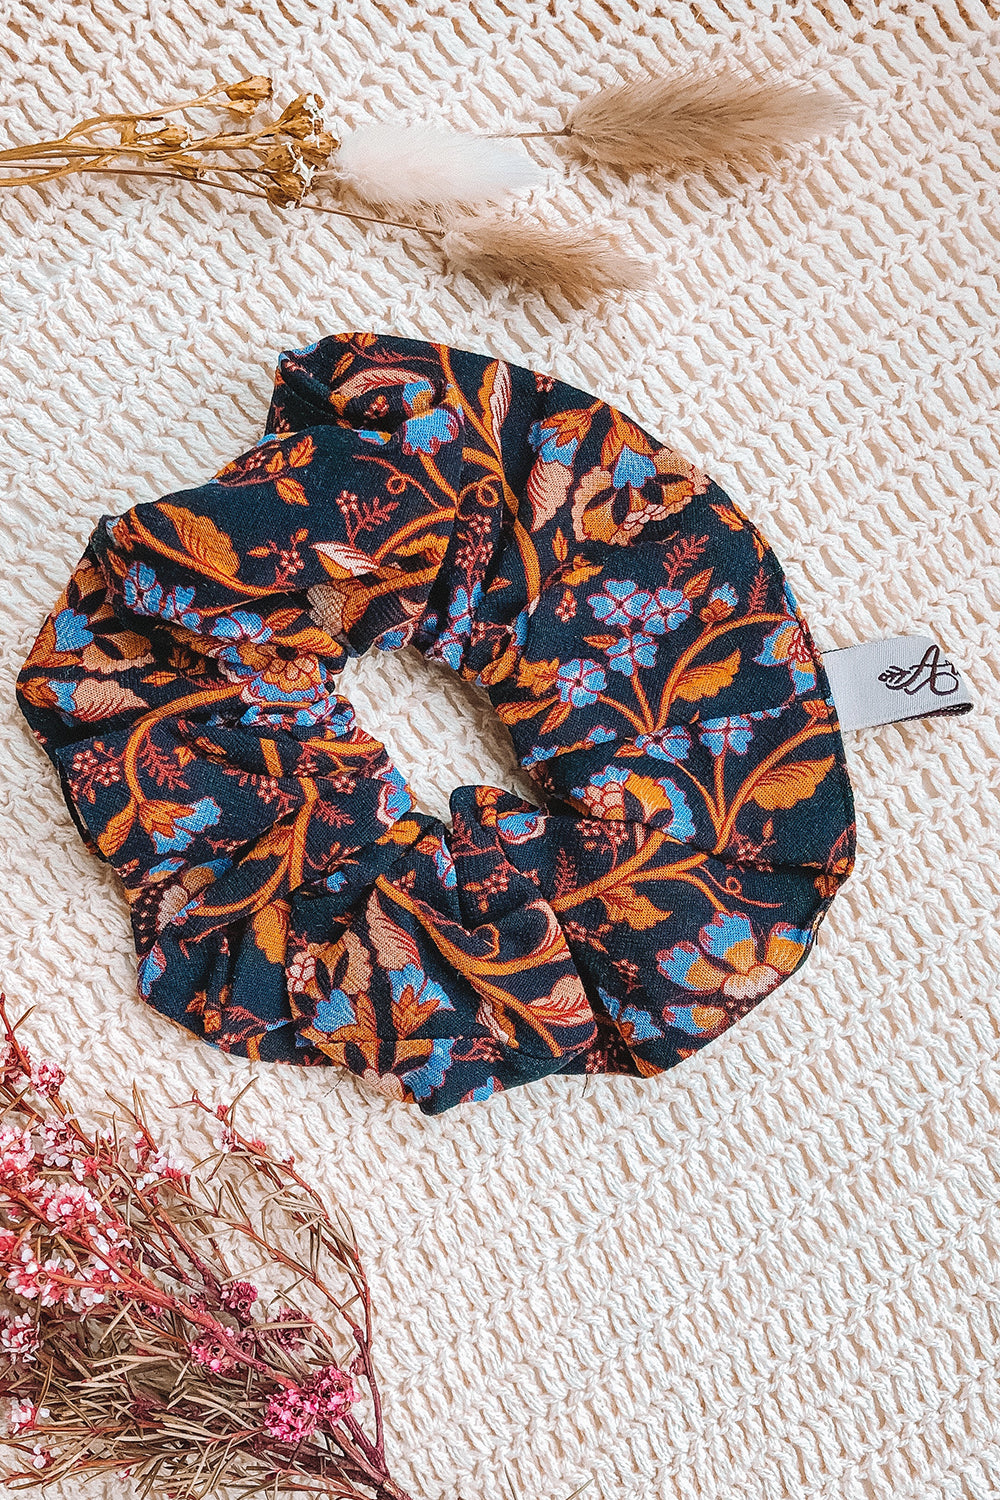 Daisy Chain Revive Scrunchie Amber